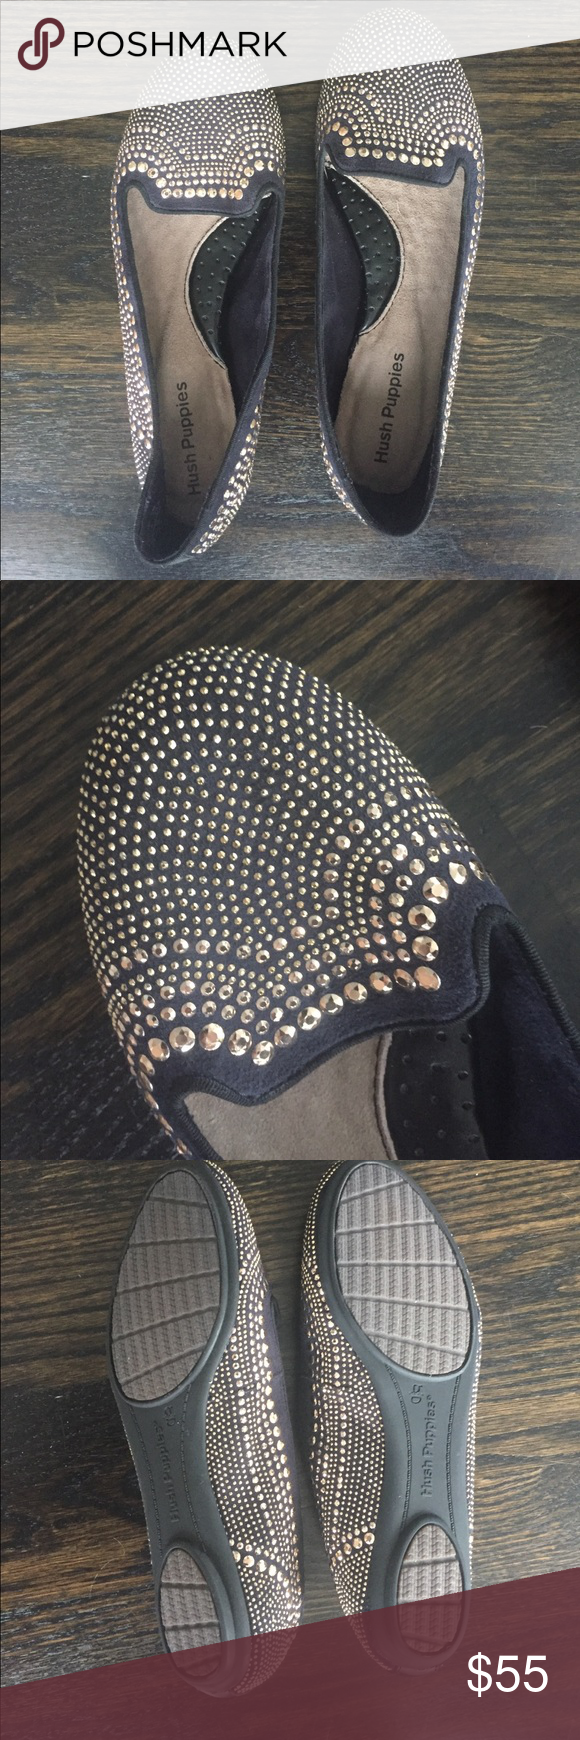 Studded Flats by Hush Puppies Super cute never been worn